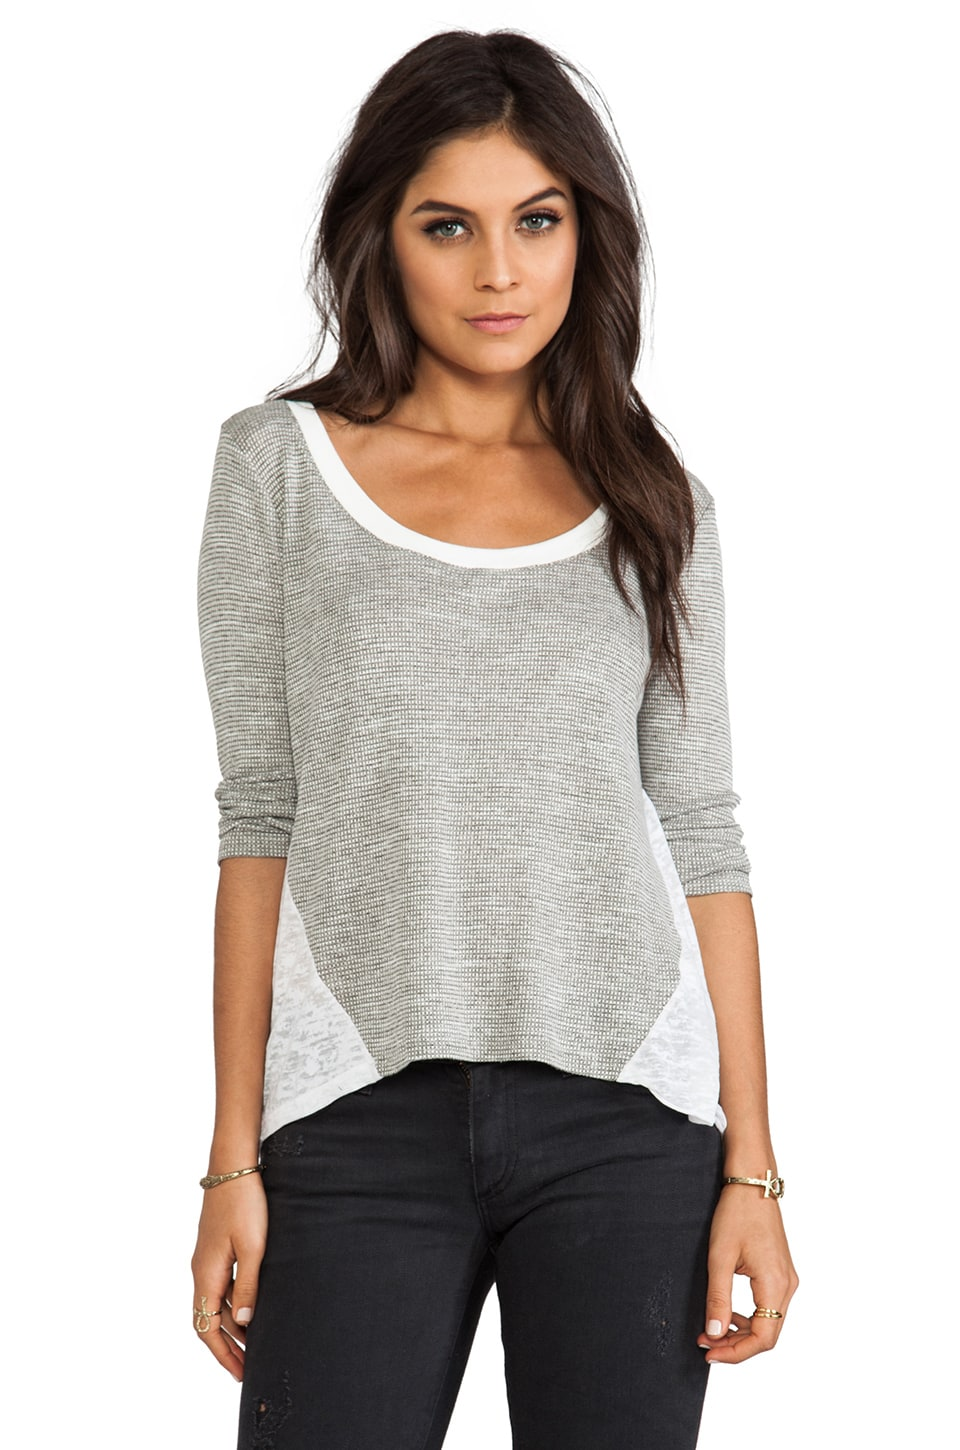 WOODLEIGH Daphne Top in Heather